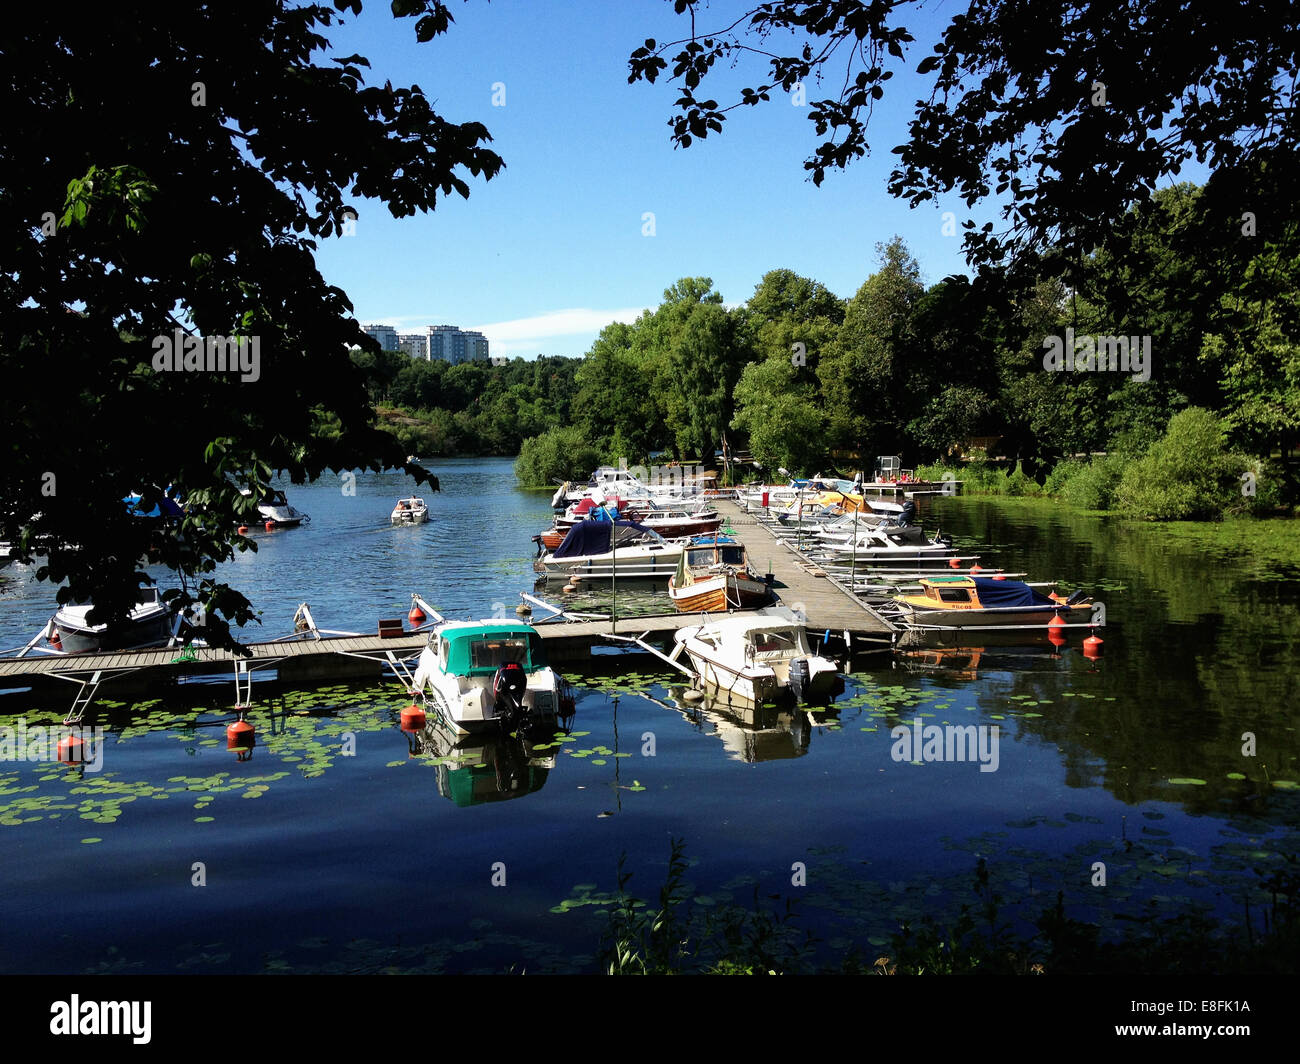 Boats moored along wooden jetty, Stockholm, Sweden - Stock Image